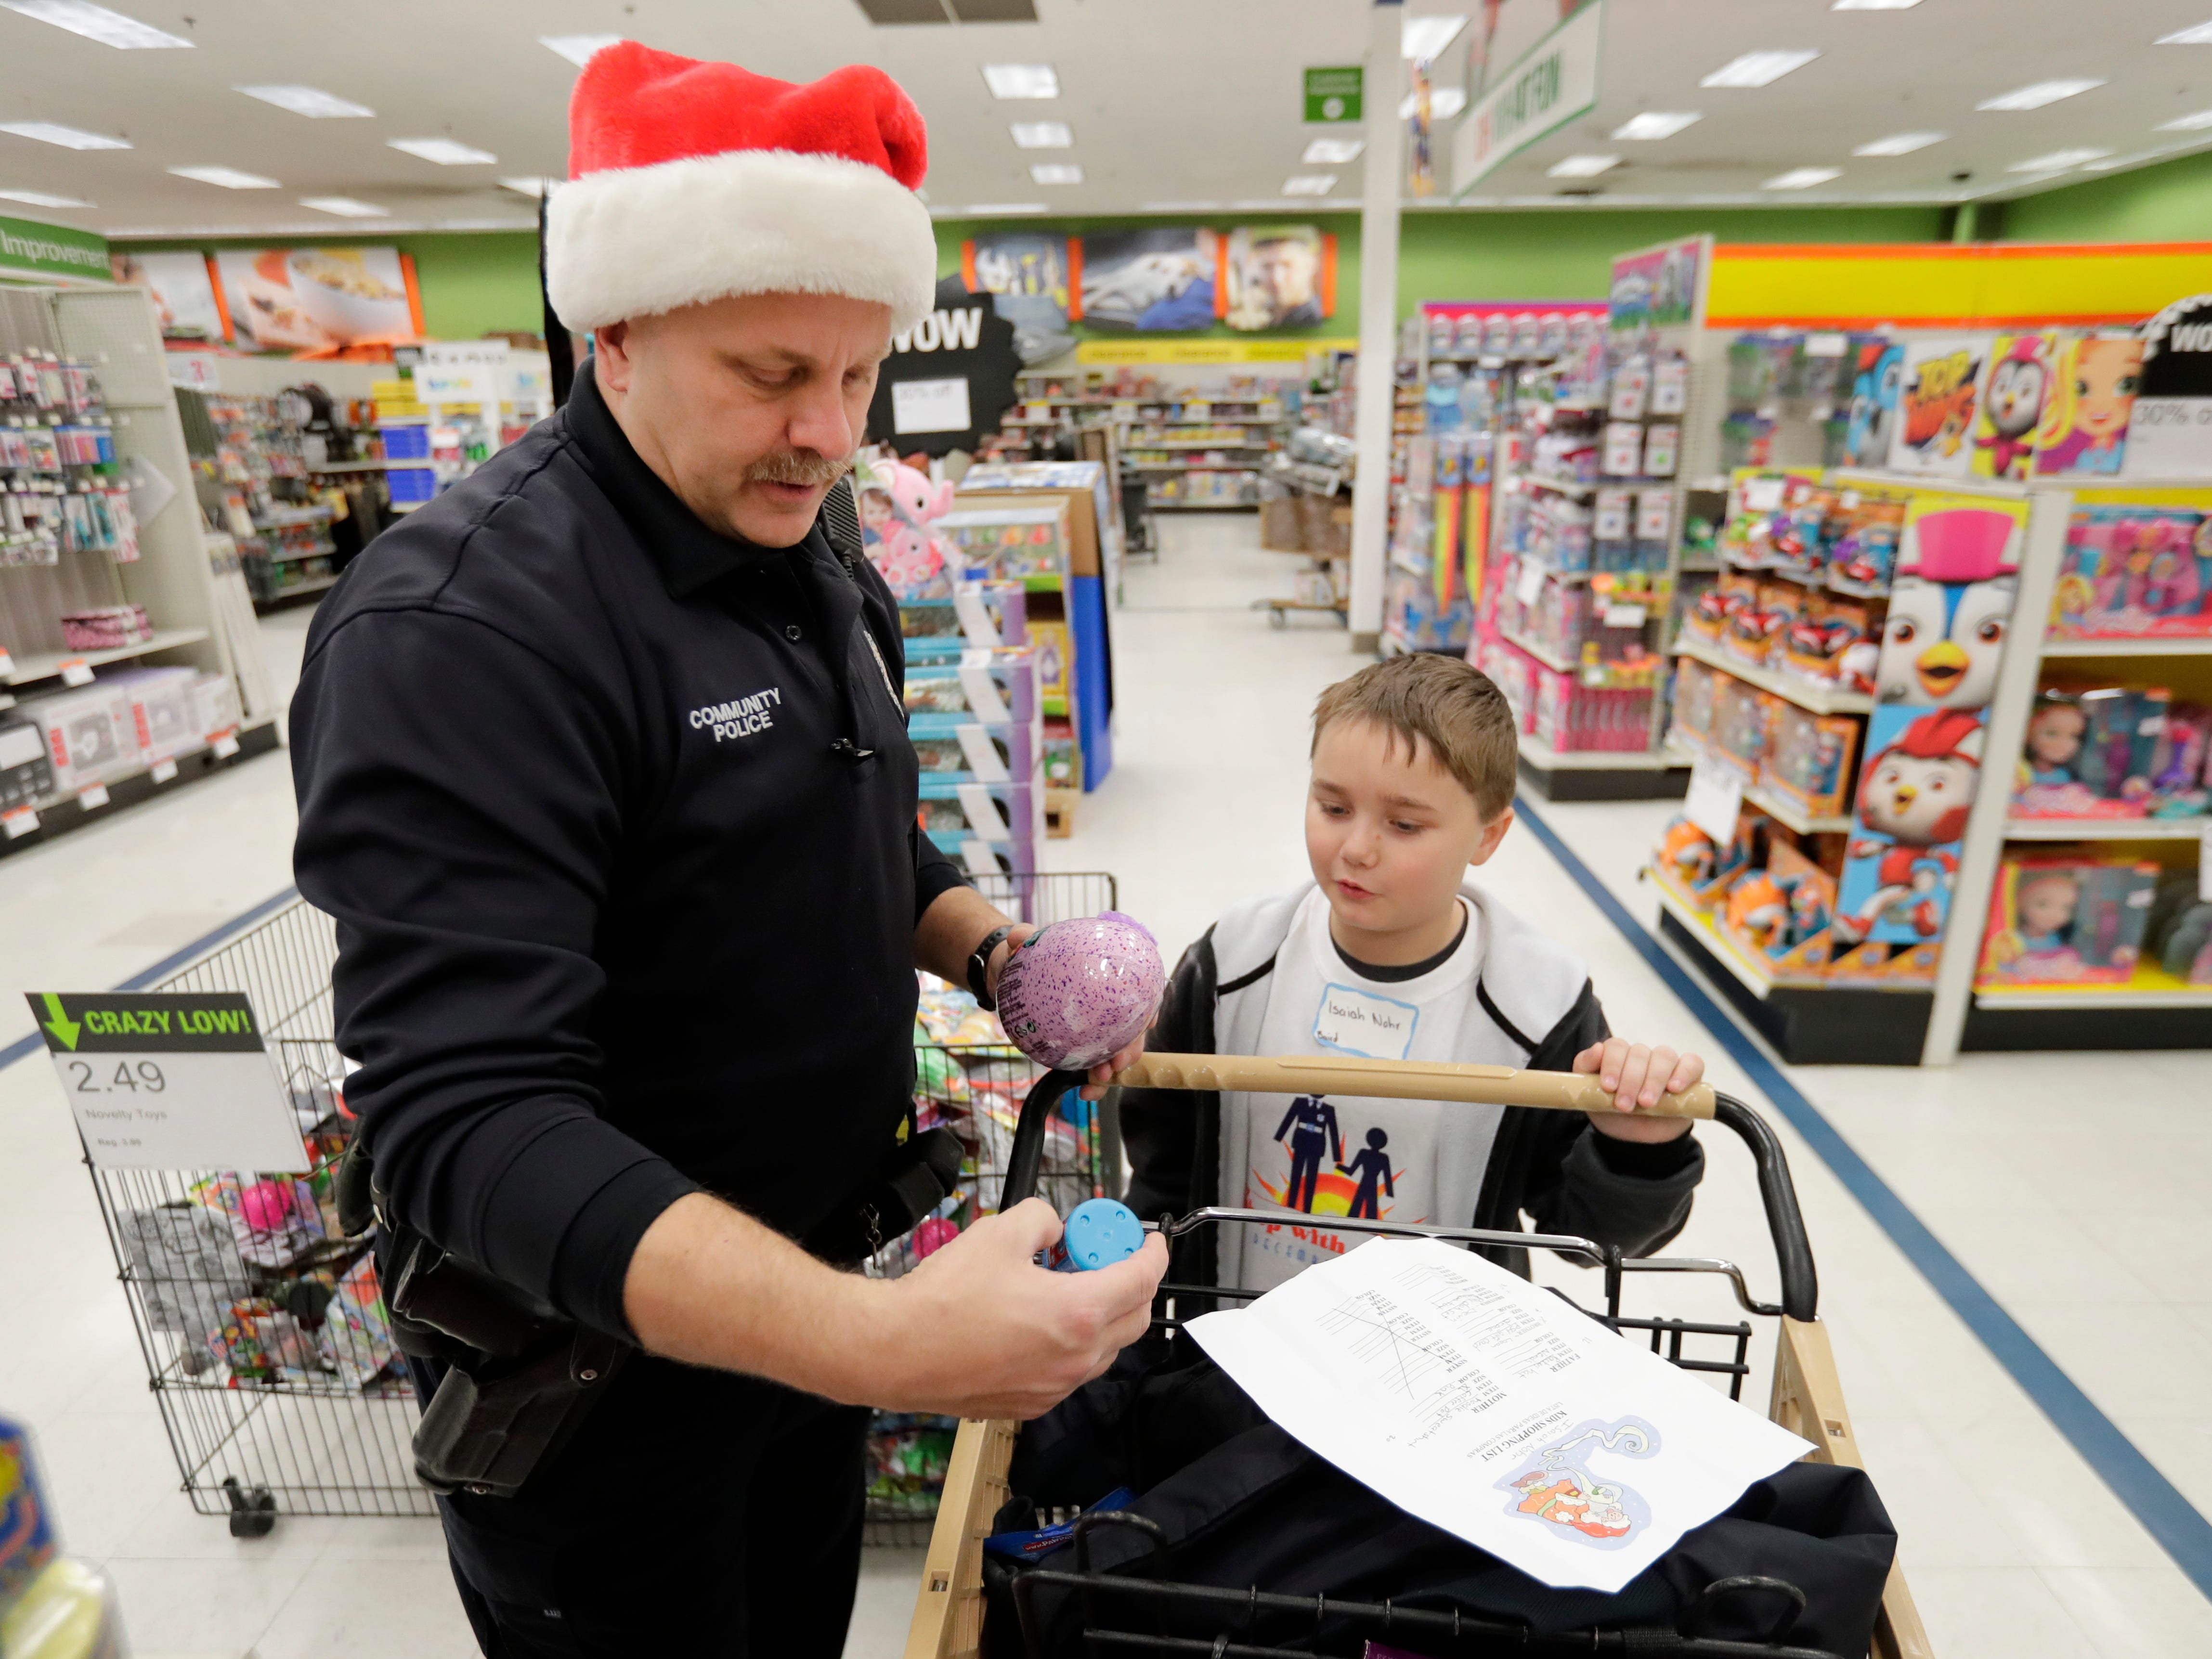 Green Bay Police Department Officer Scott Schuetze shops with his Shop with A Cop program kid at Shopko on East Mason Street December 8, 2018 in Green Bay, Wis.